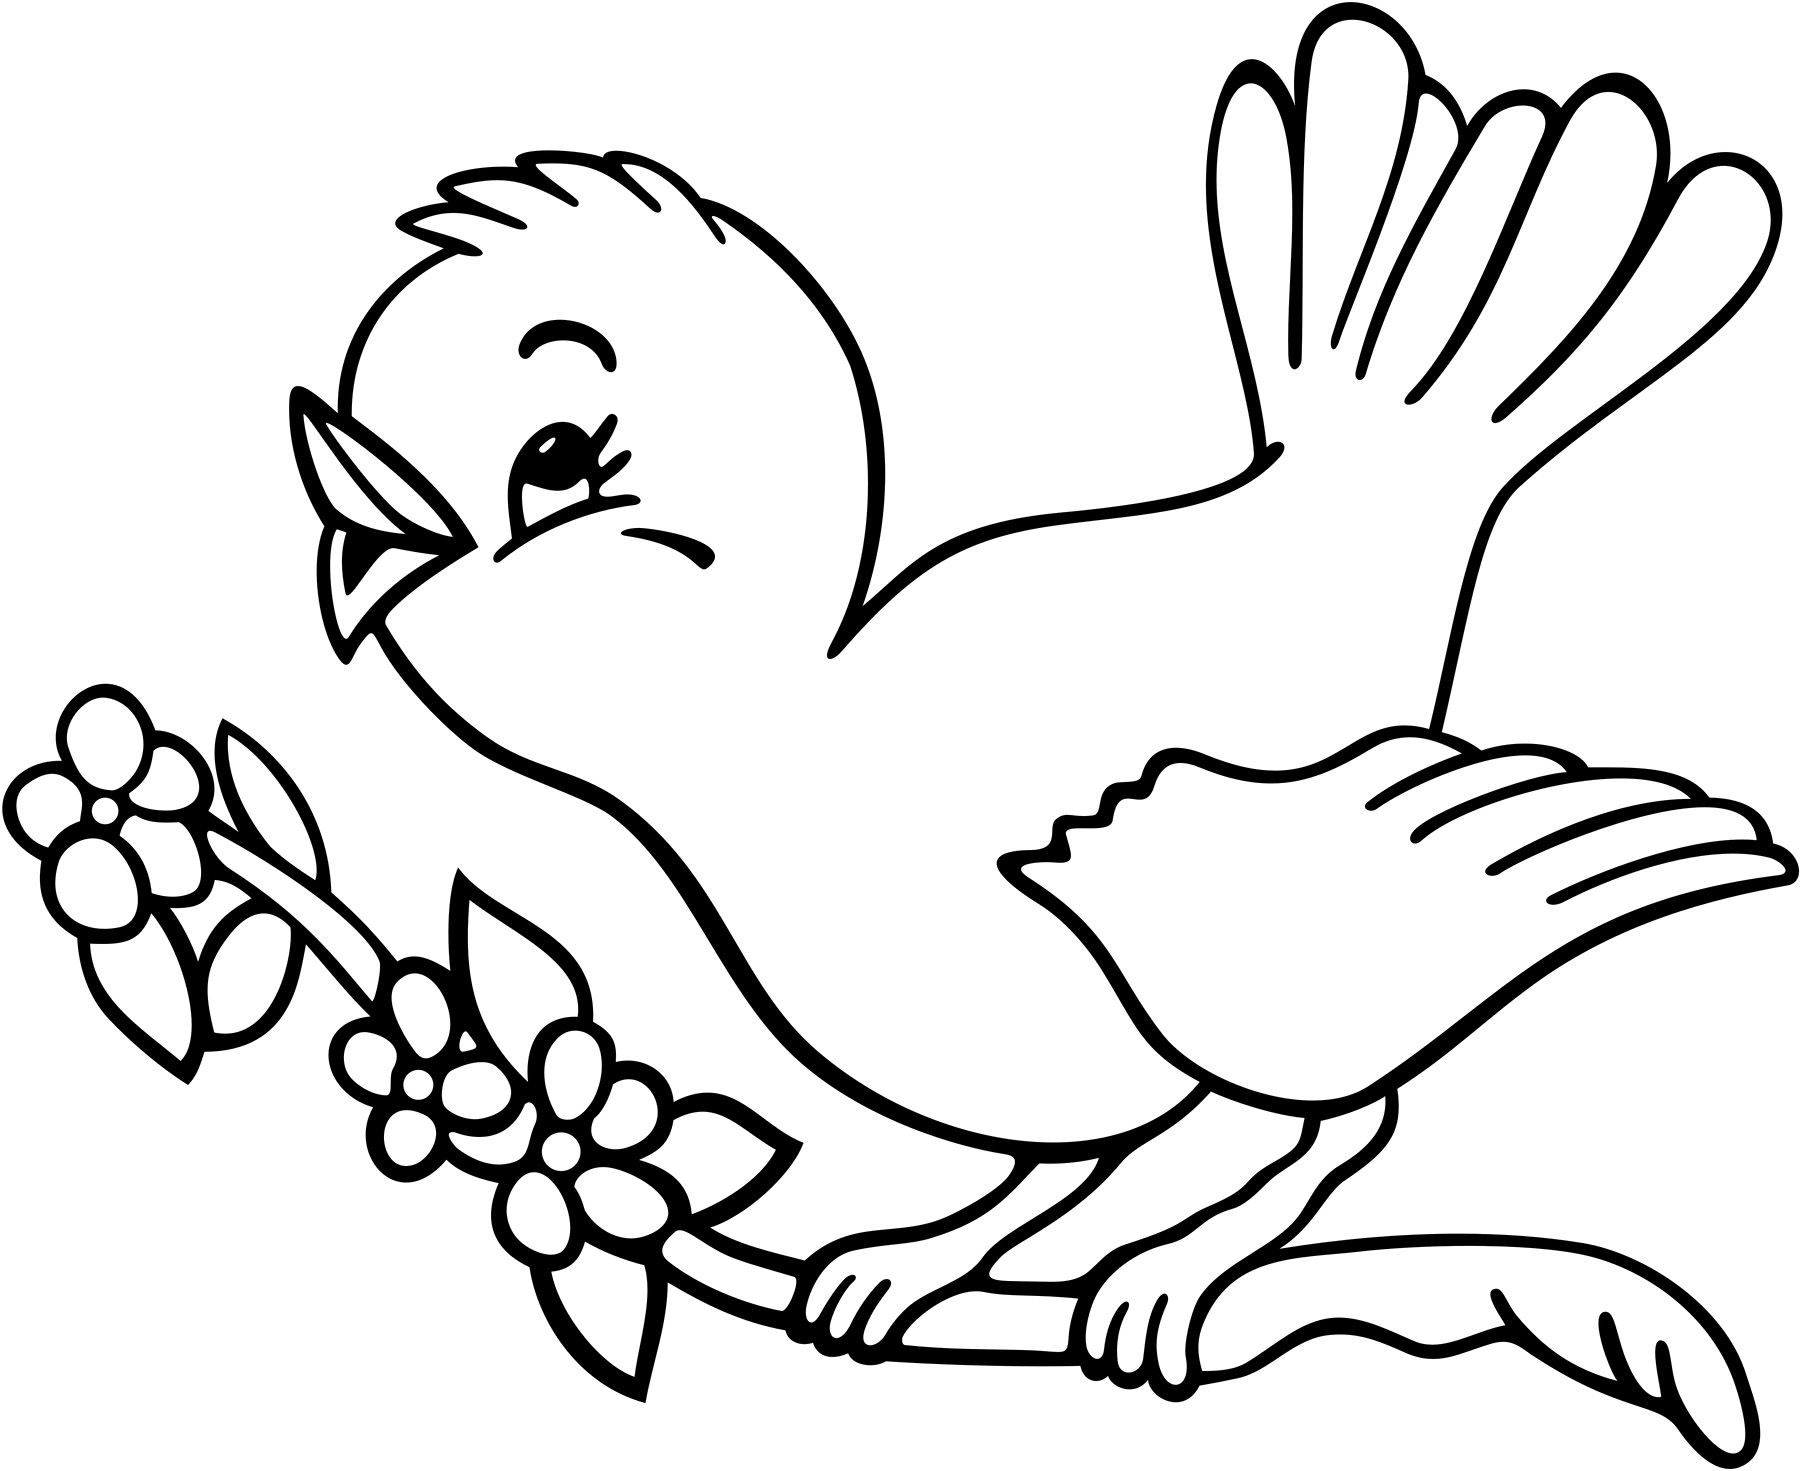 1802x1471 Bird Coloring Pages Sheets Free Printable Flying Angry Pdf